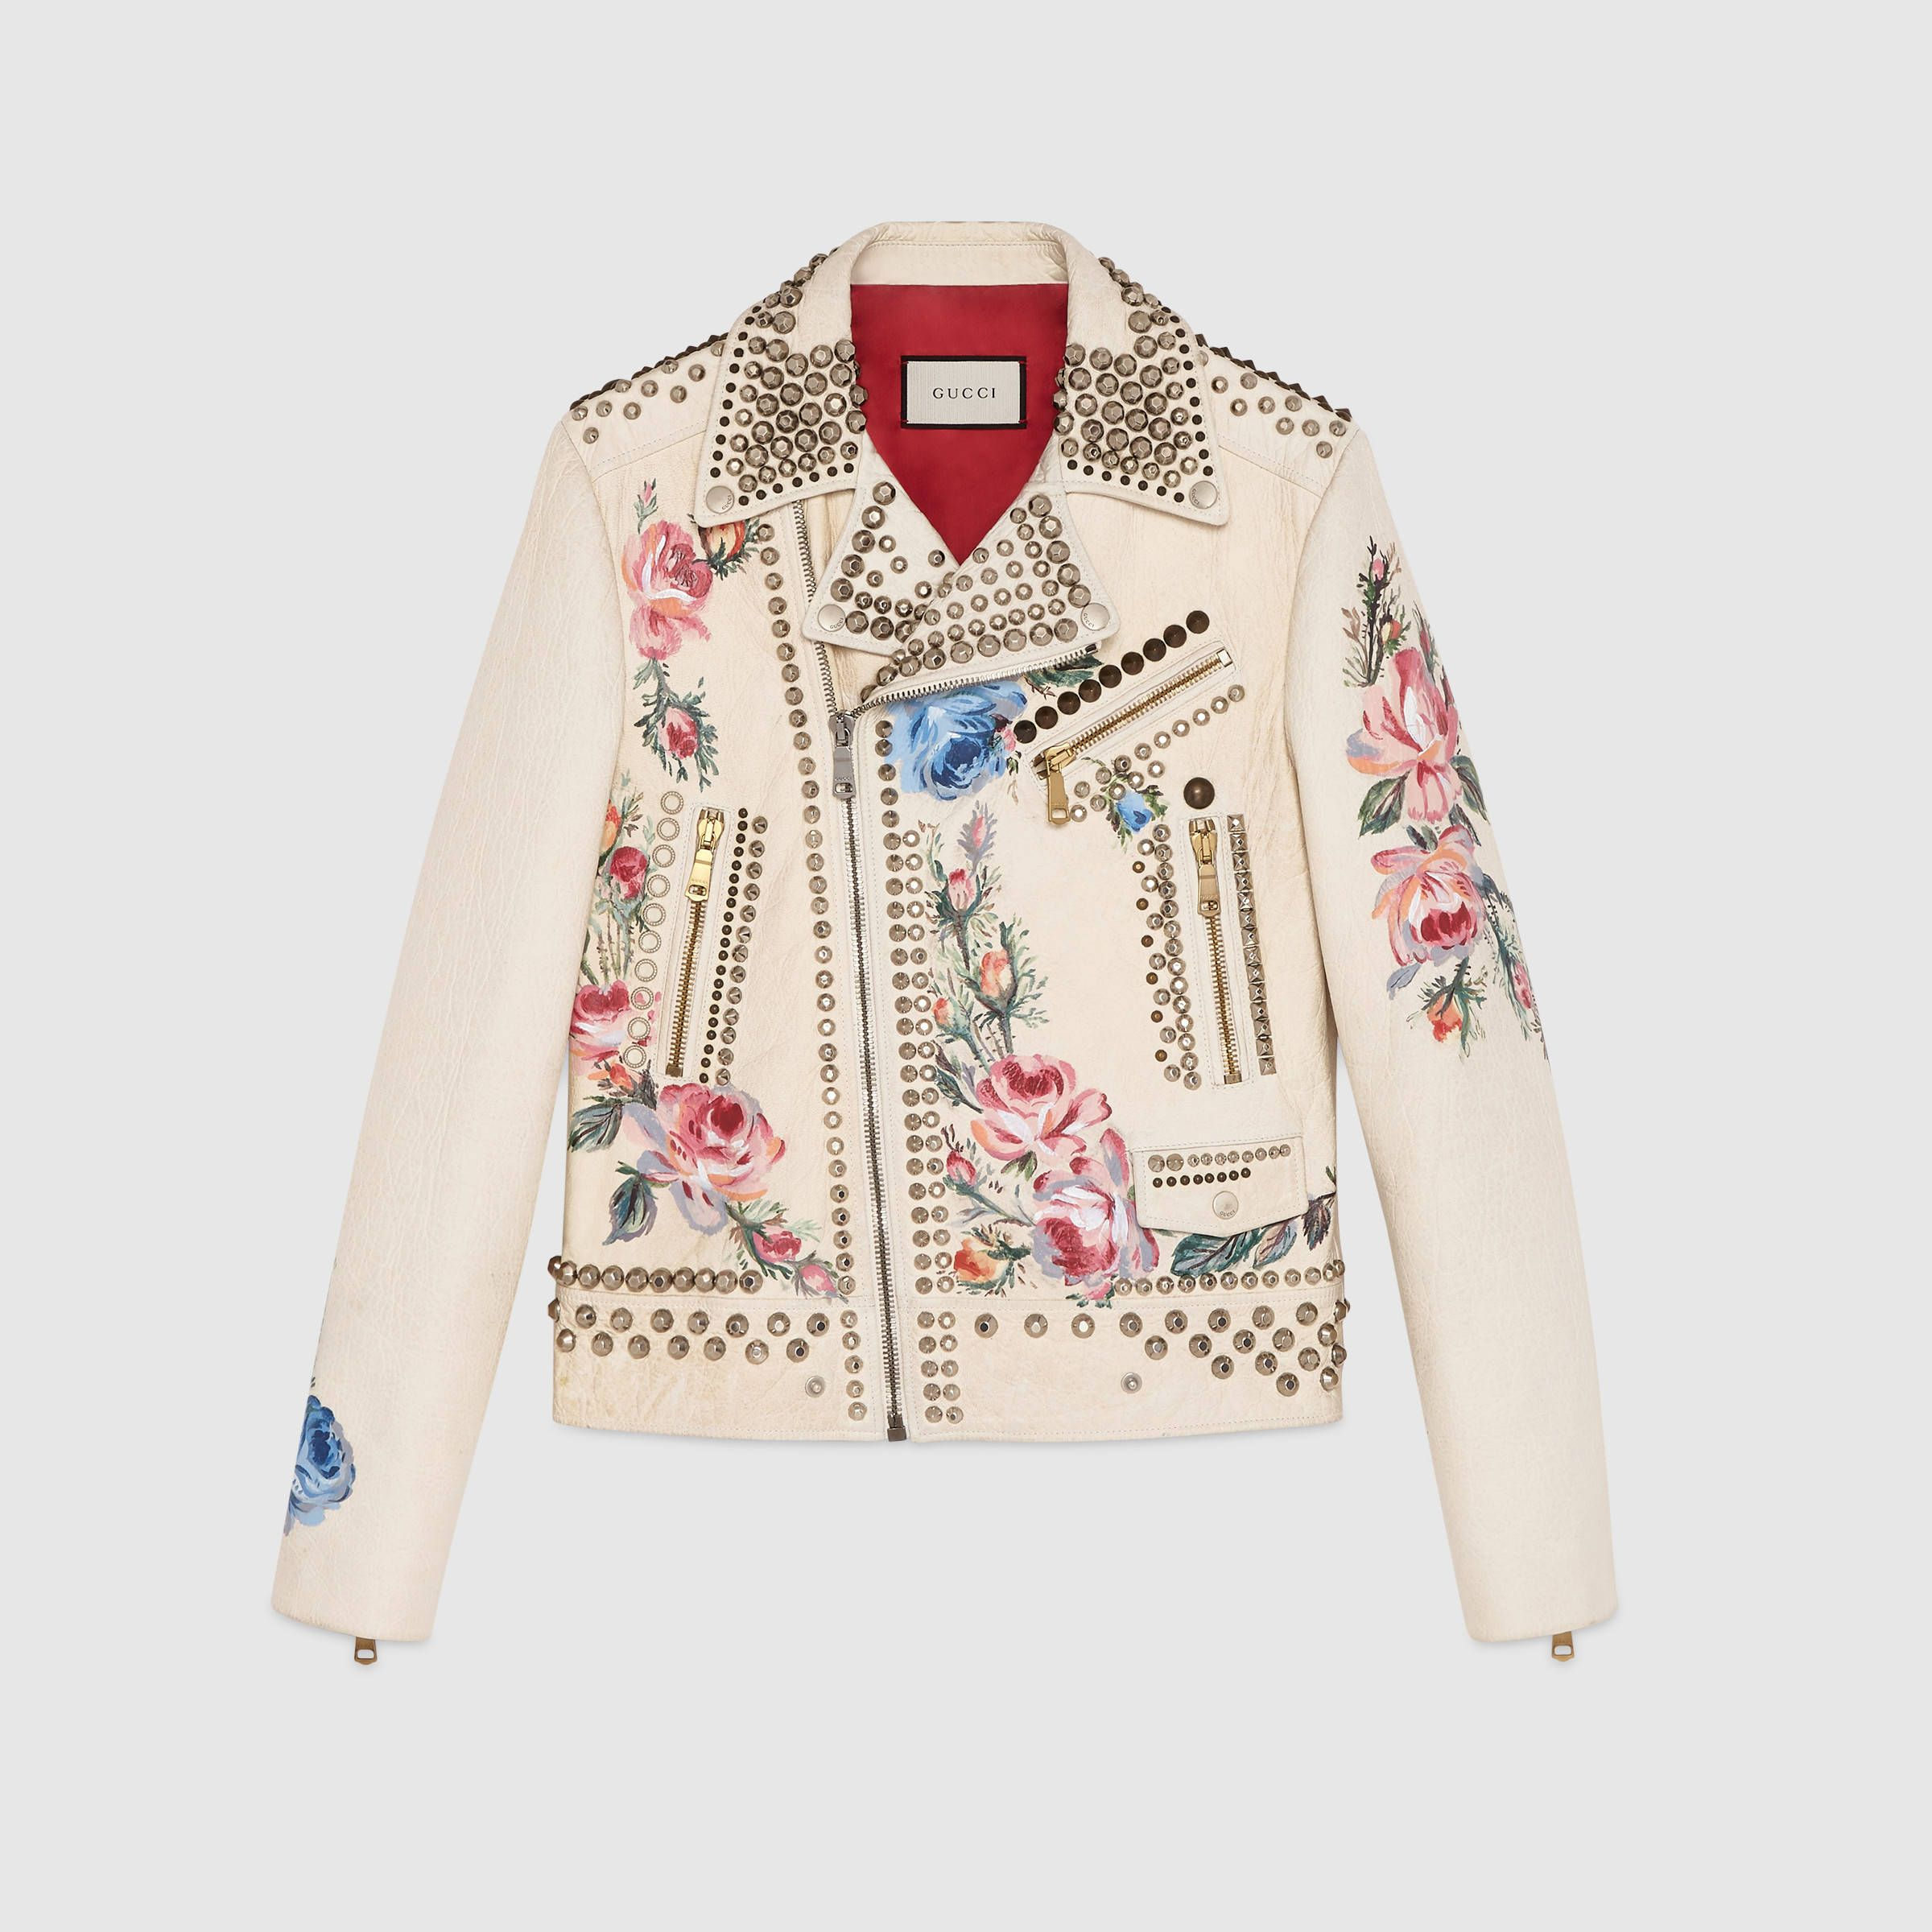 8a42d6c2 GUCCI Men Hand-painted leather biker jacket | Fashion ...